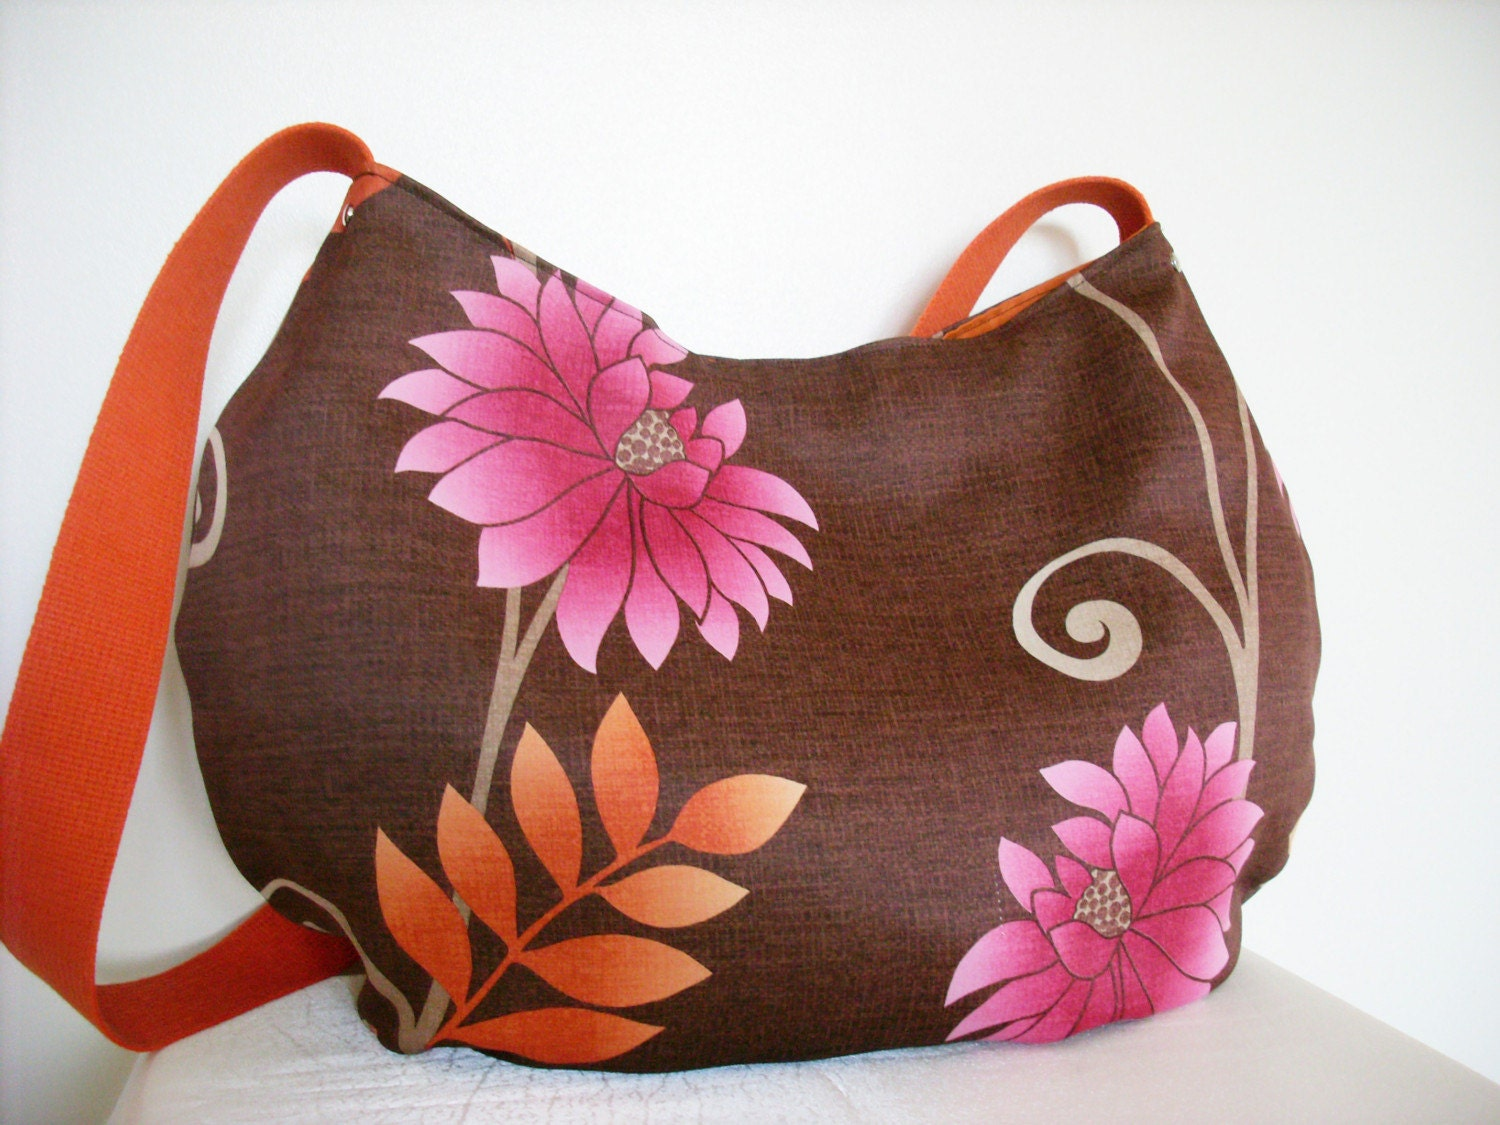 Flower Garden schoulder bag by elaabags on Etsy from etsy.com